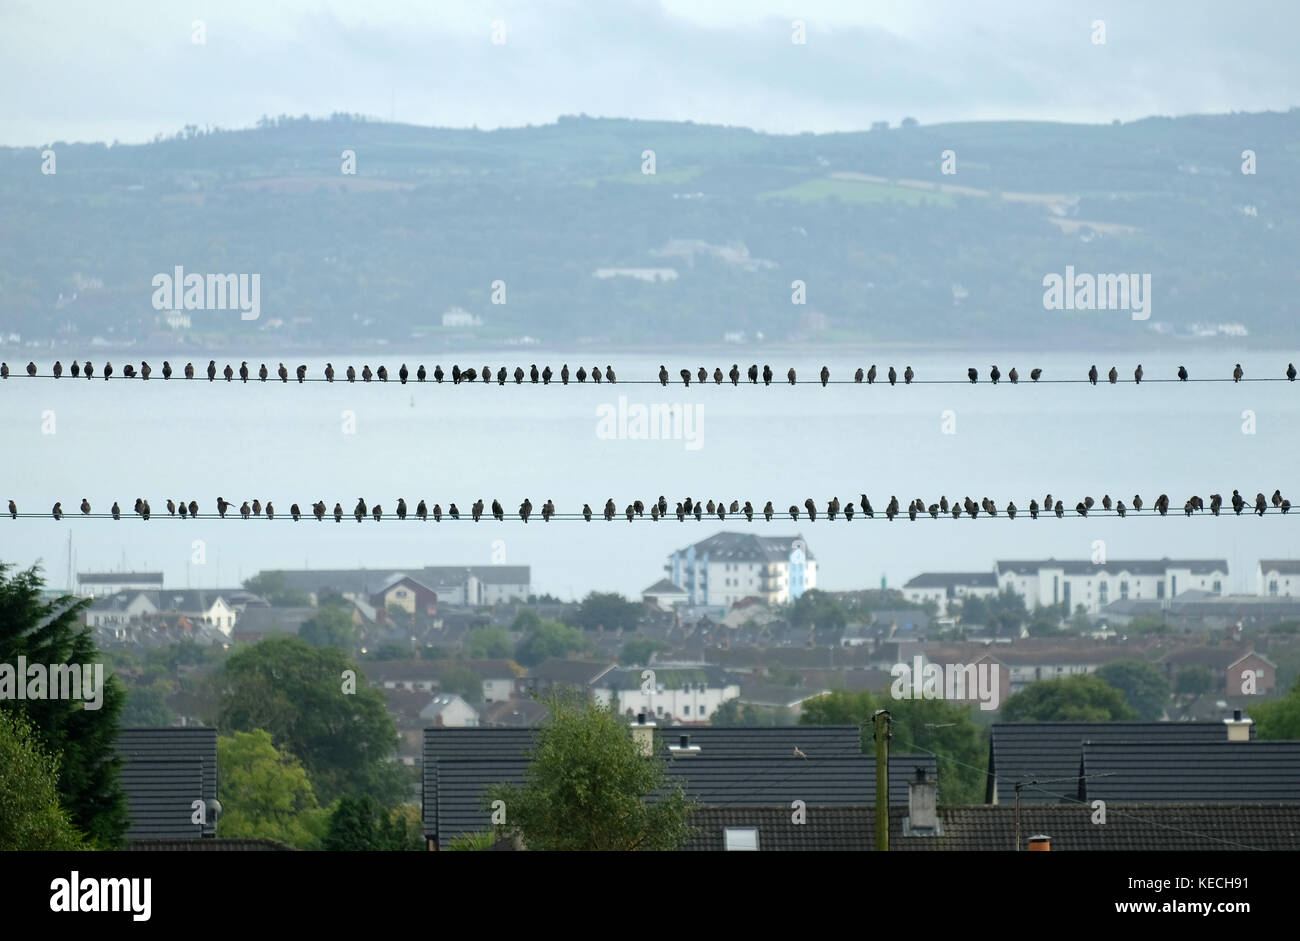 Bird On A Wire Stock Photos & Bird On A Wire Stock Images - Alamy